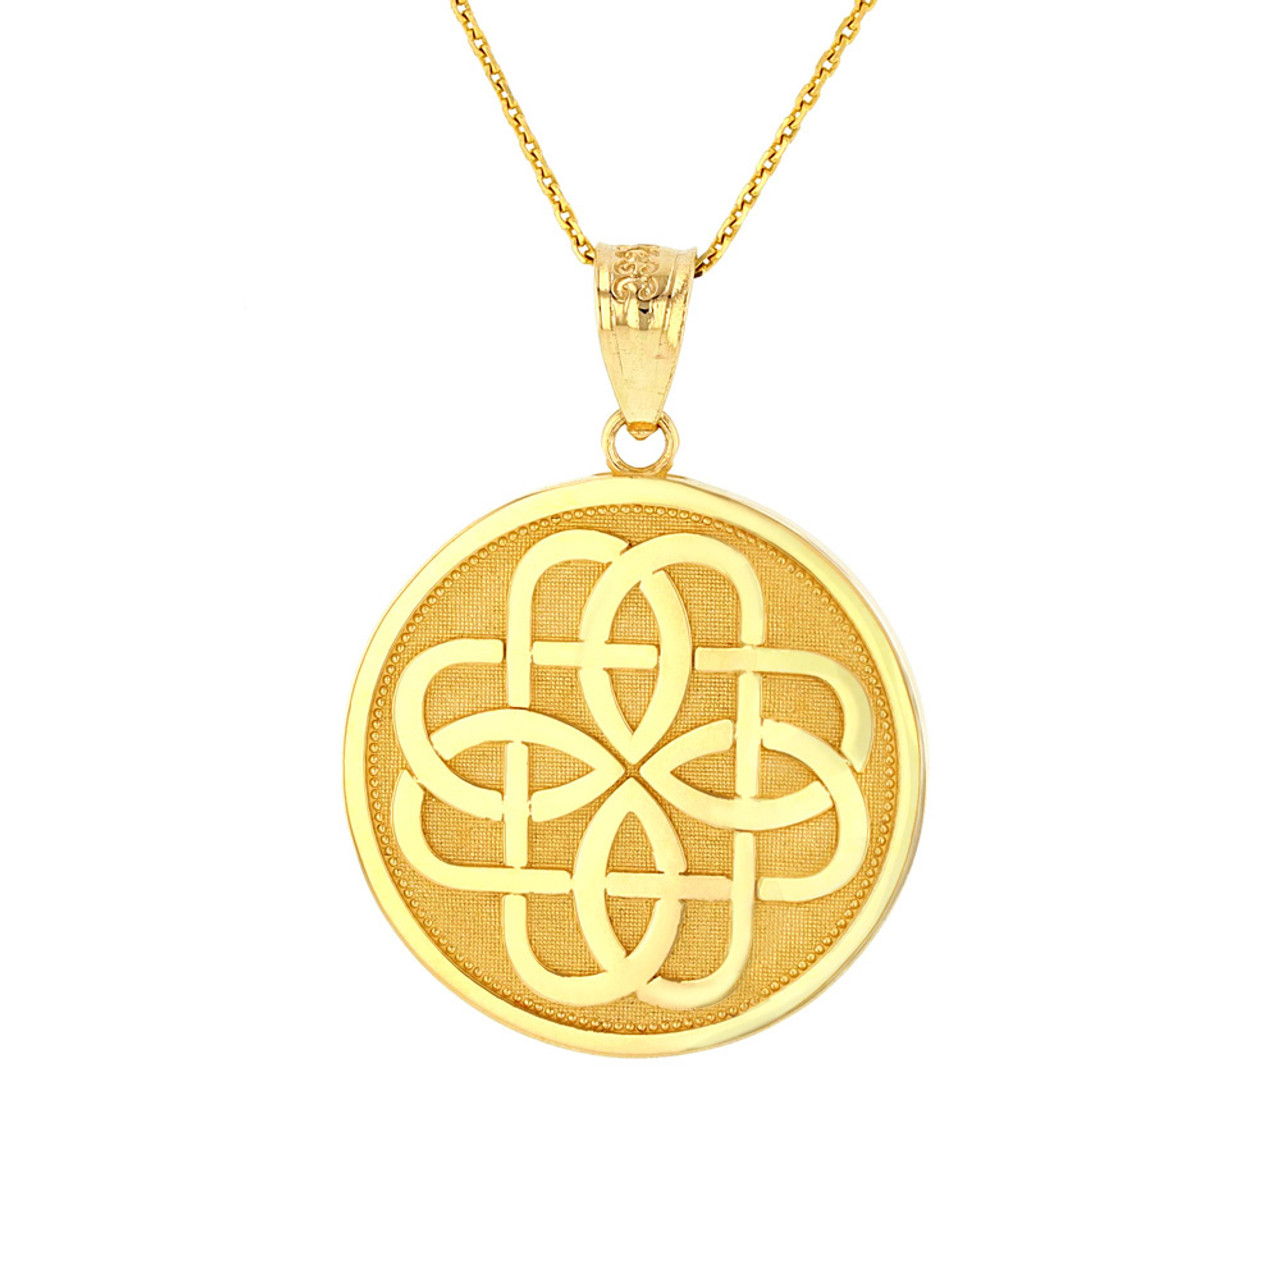 Solid yellow gold celtic knot flower medallion pendant necklace aloadofball Choice Image